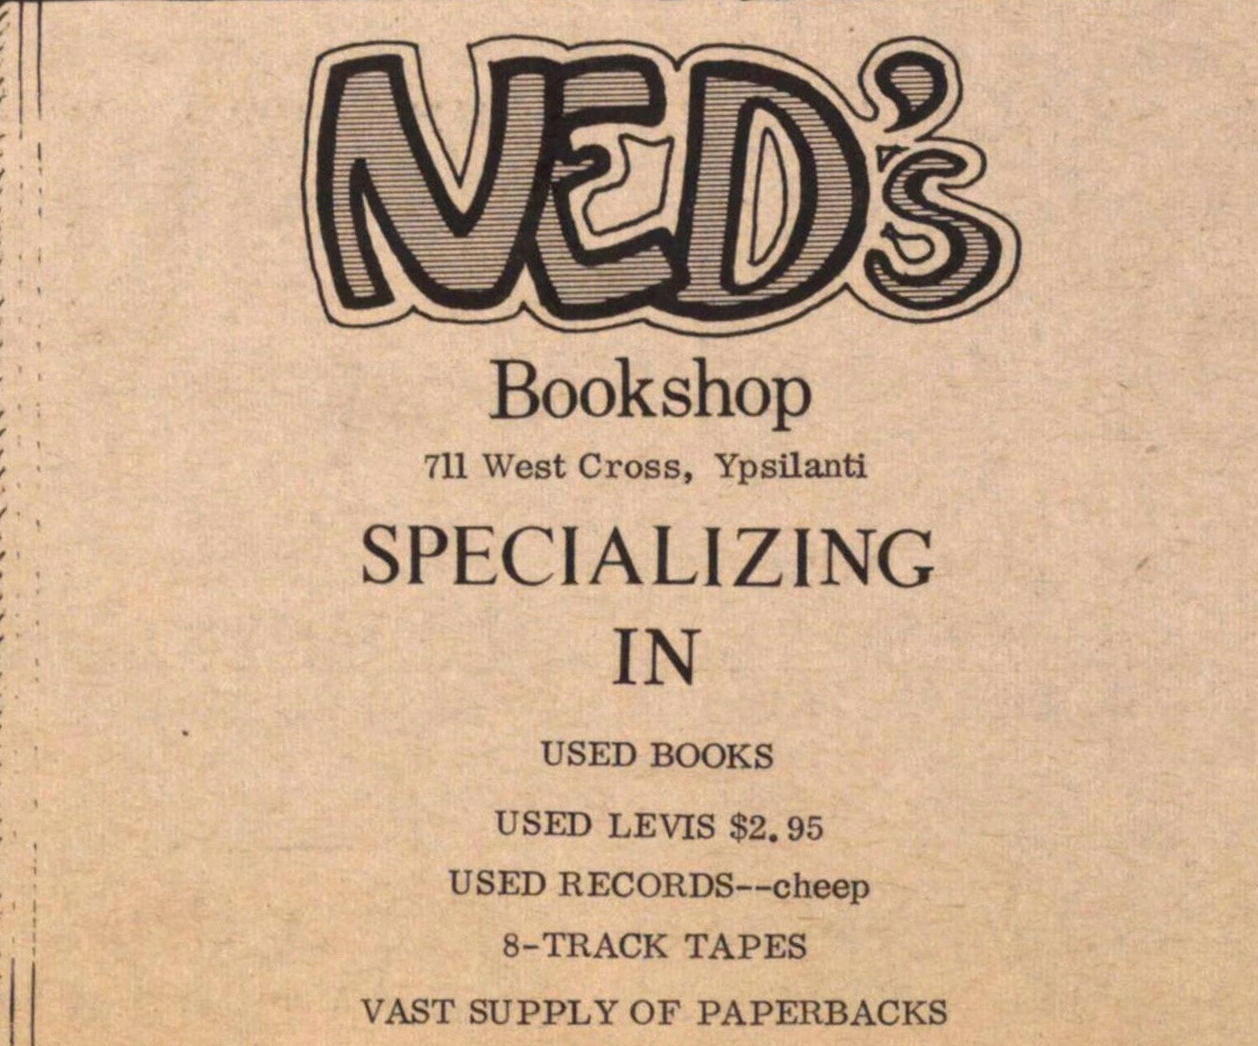 Ned's image